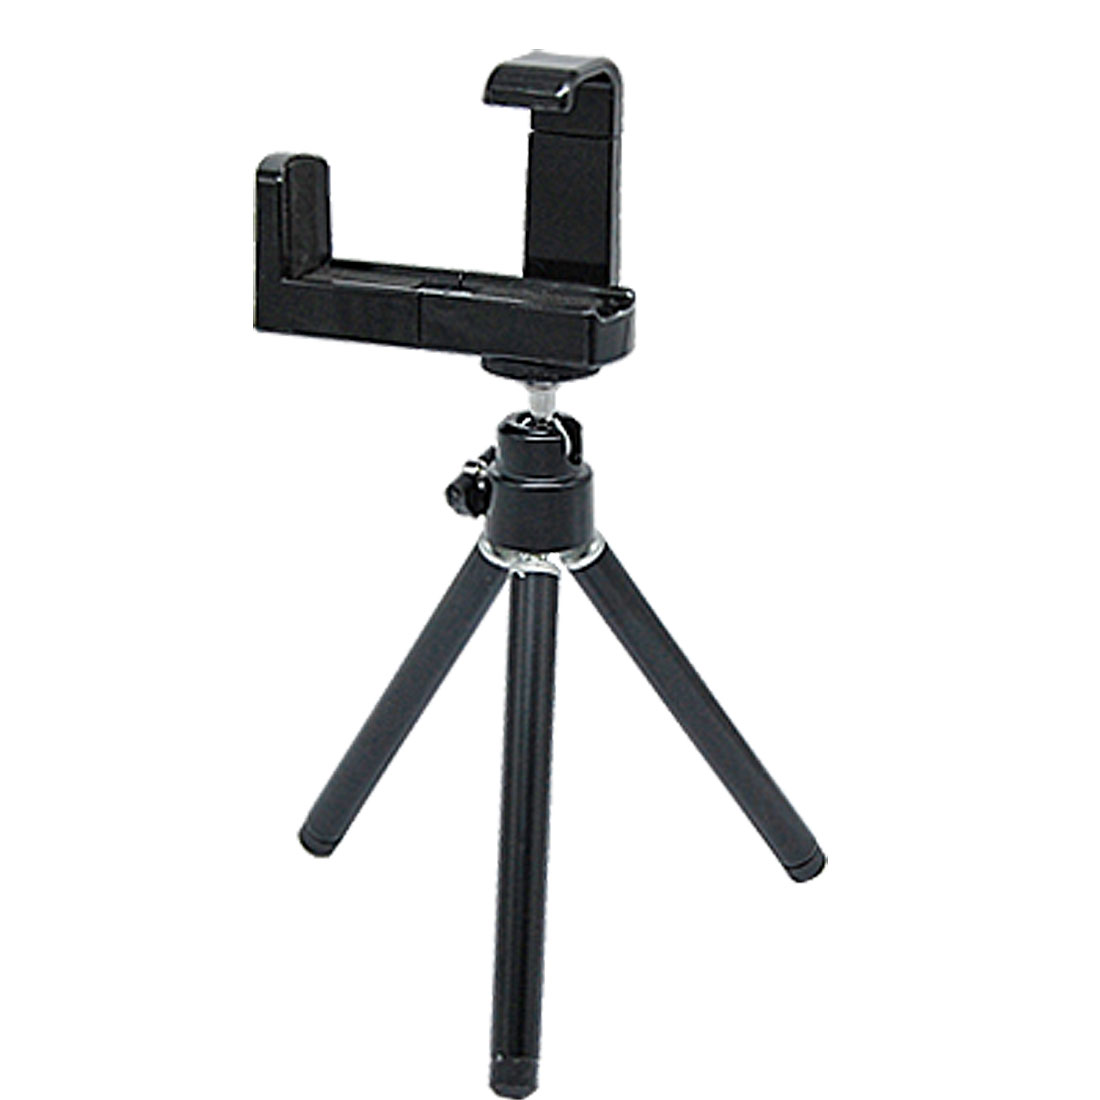 Tripod for Cellphone, Mobile Phone Camera